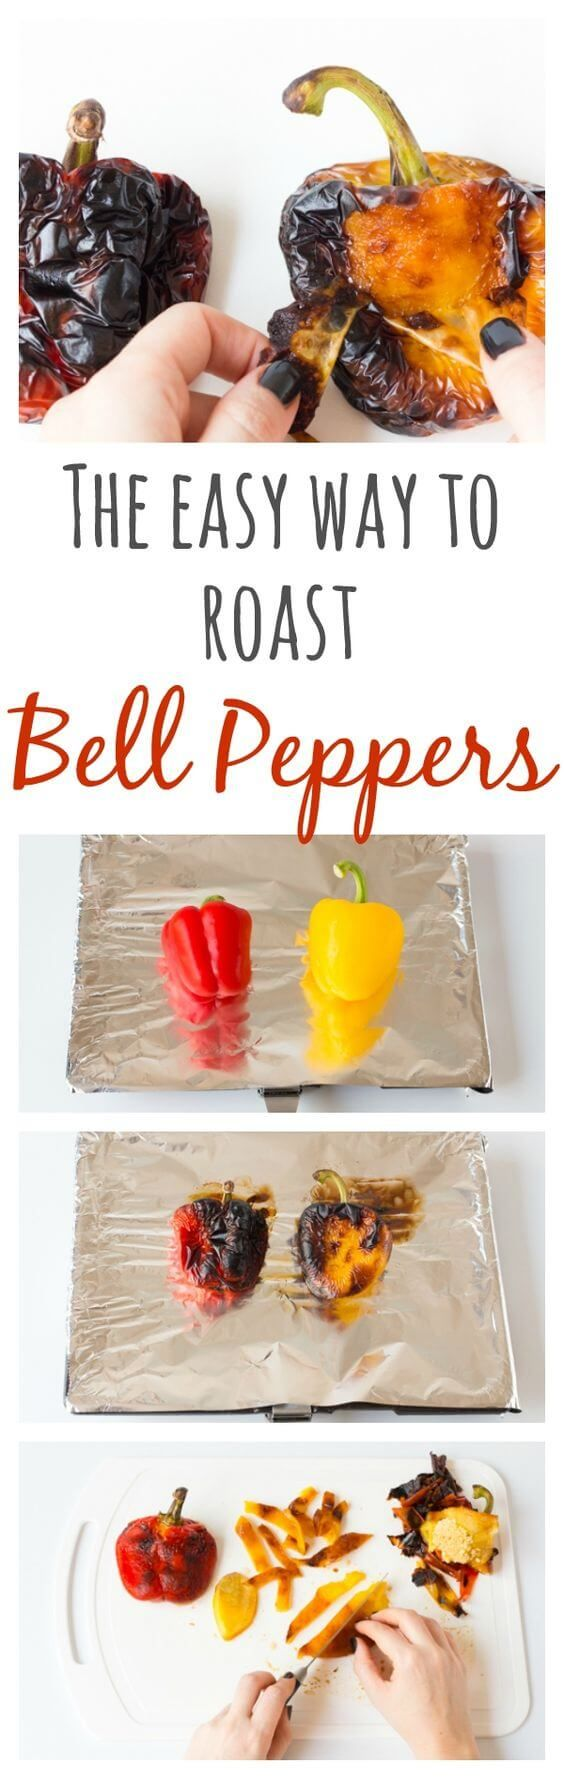 nice How to Roast Bell Peppers